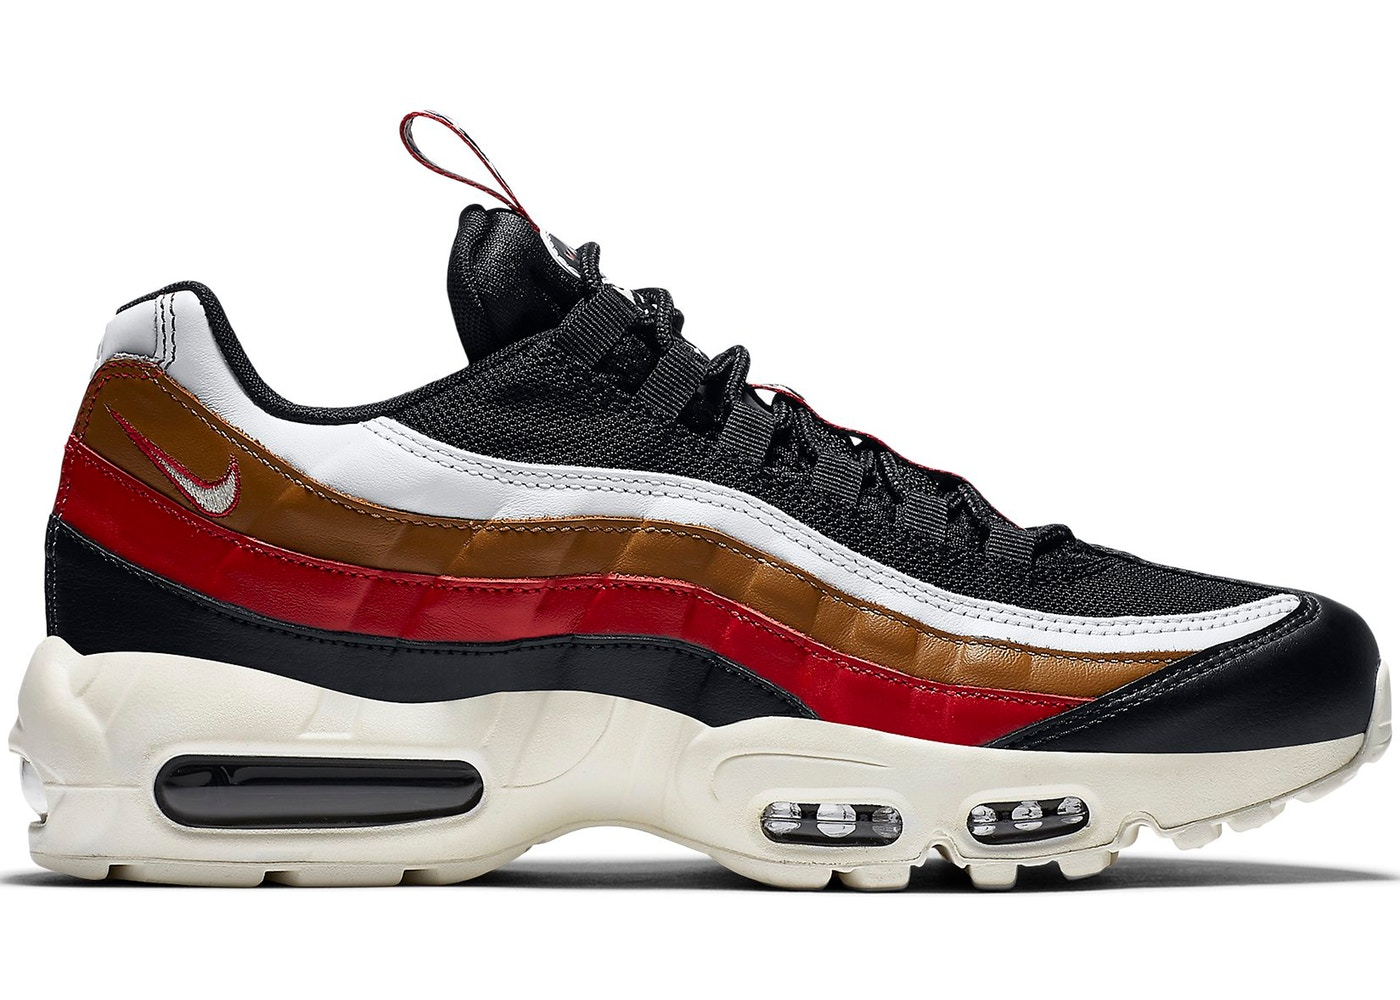 sale retailer ee5a3 0ce1e Air Max 95 Pull Tab Black Brown